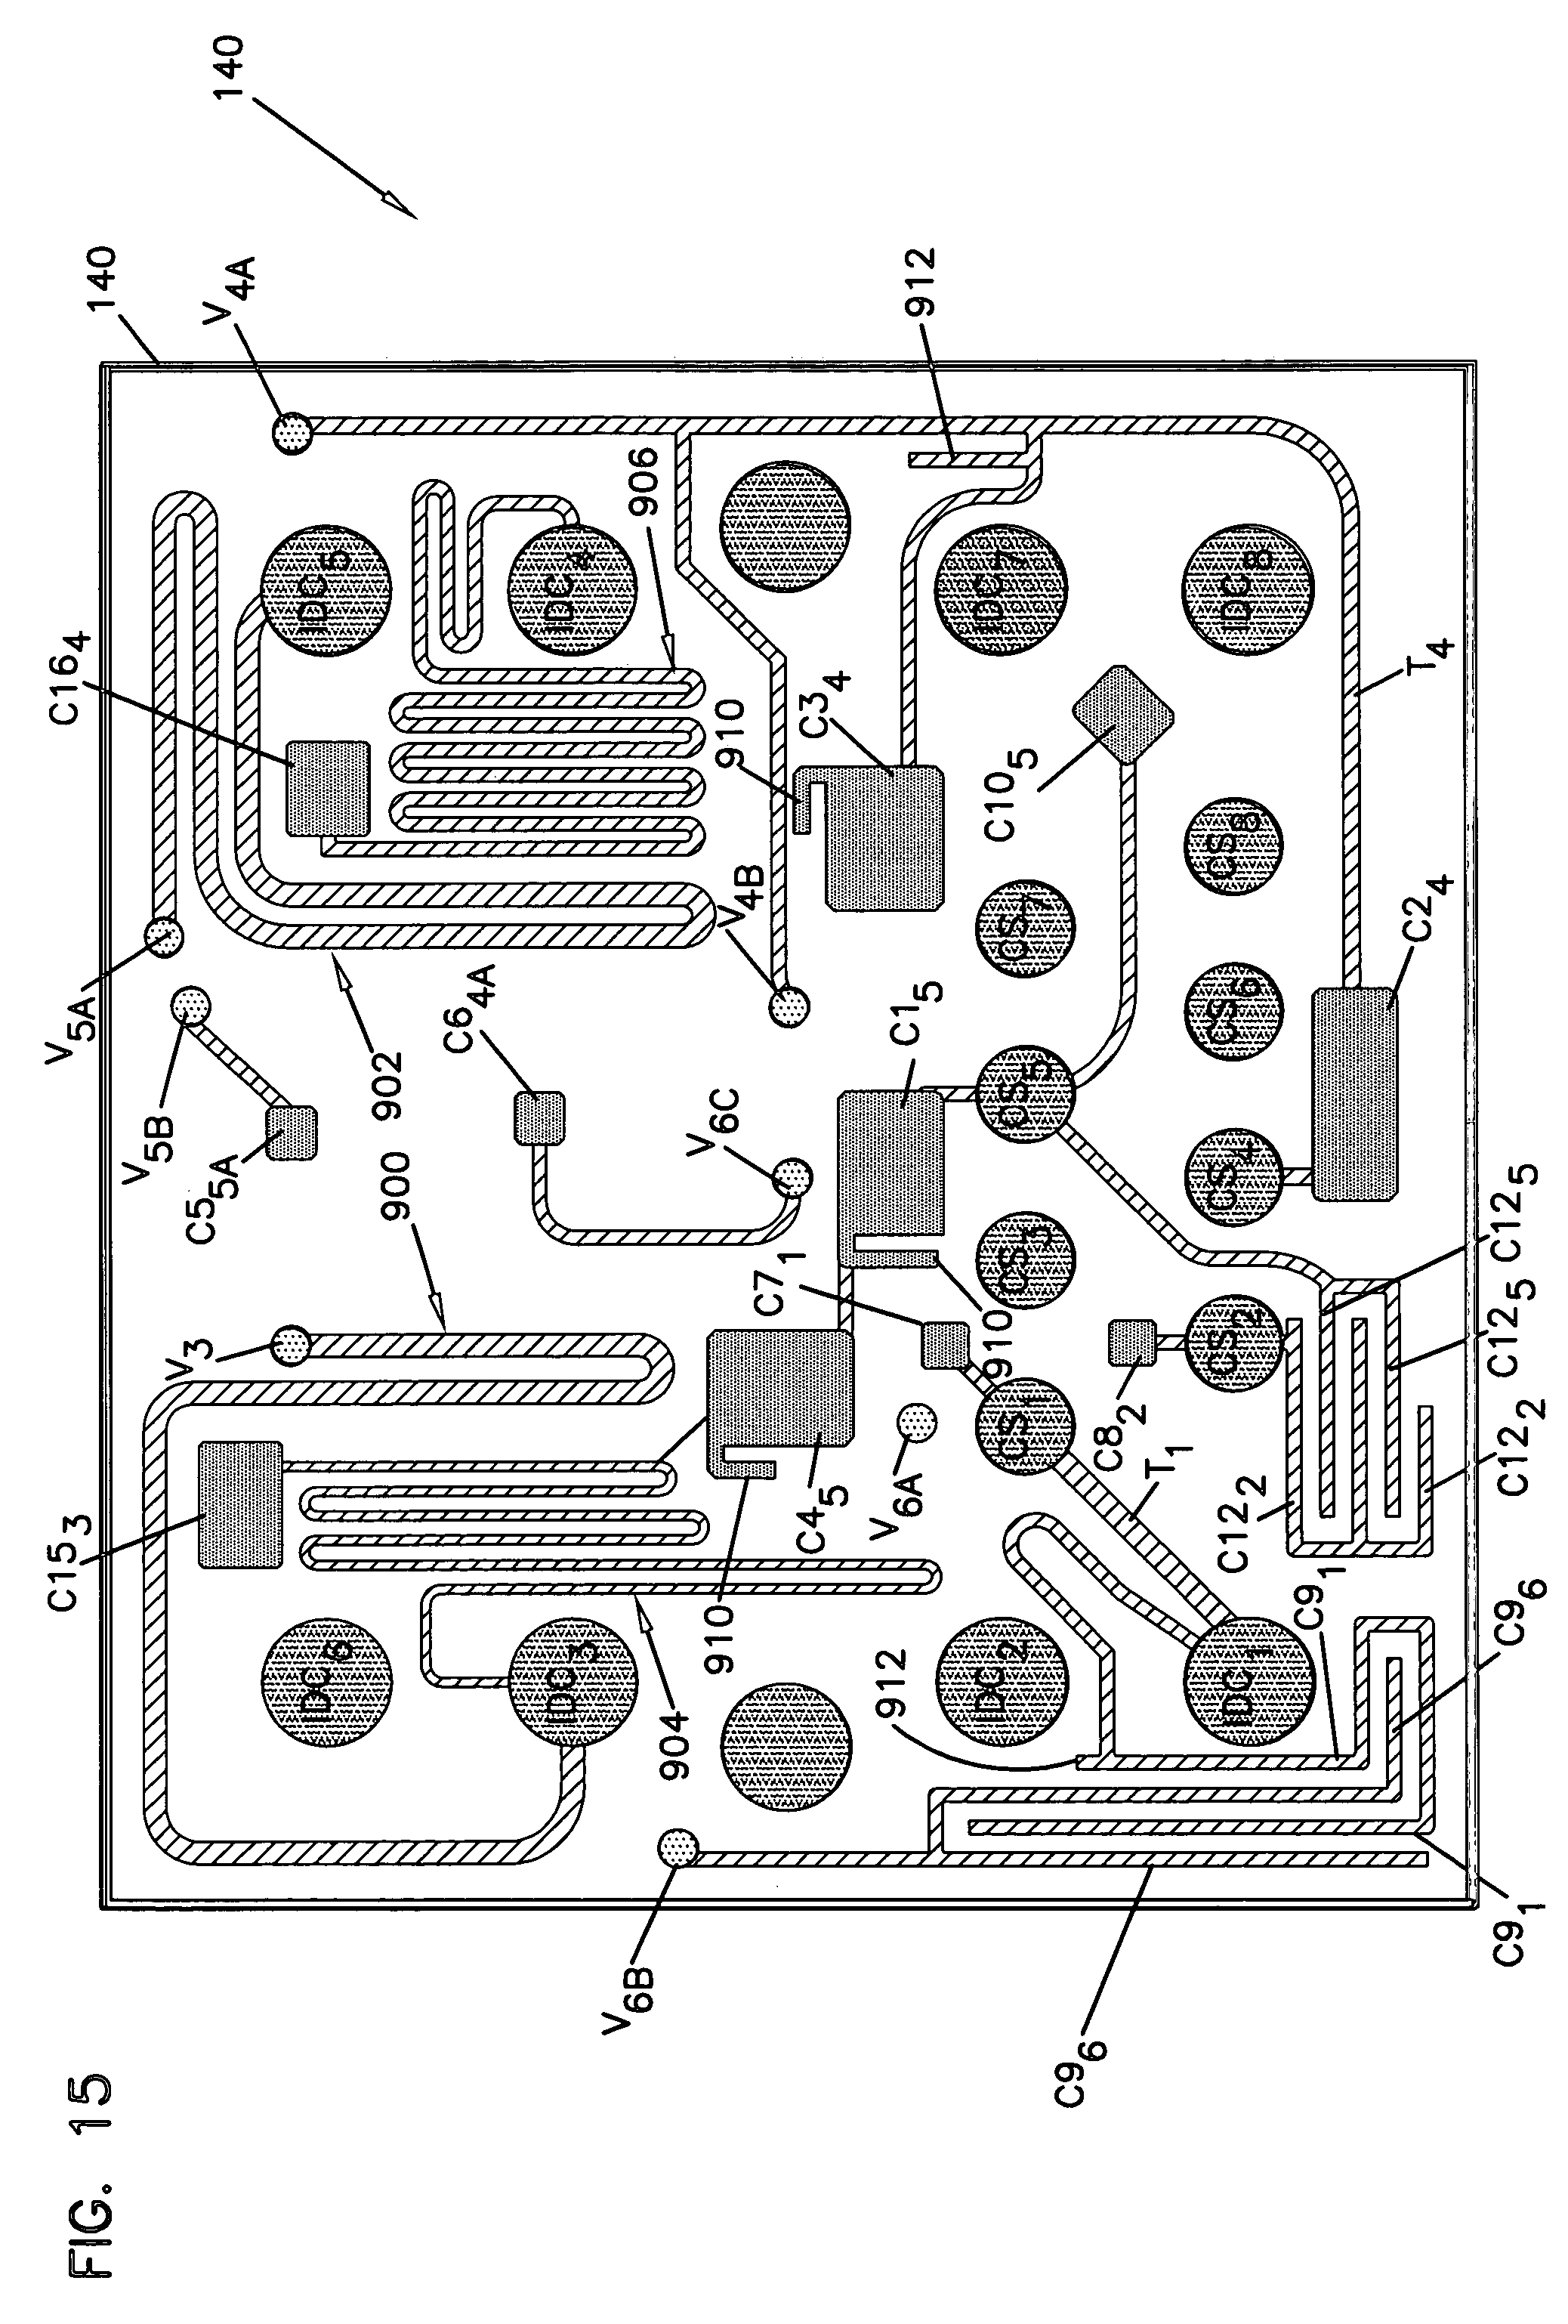 Rj31x Wiring Color Code Real Diagram Eia Harness Transmission Connections